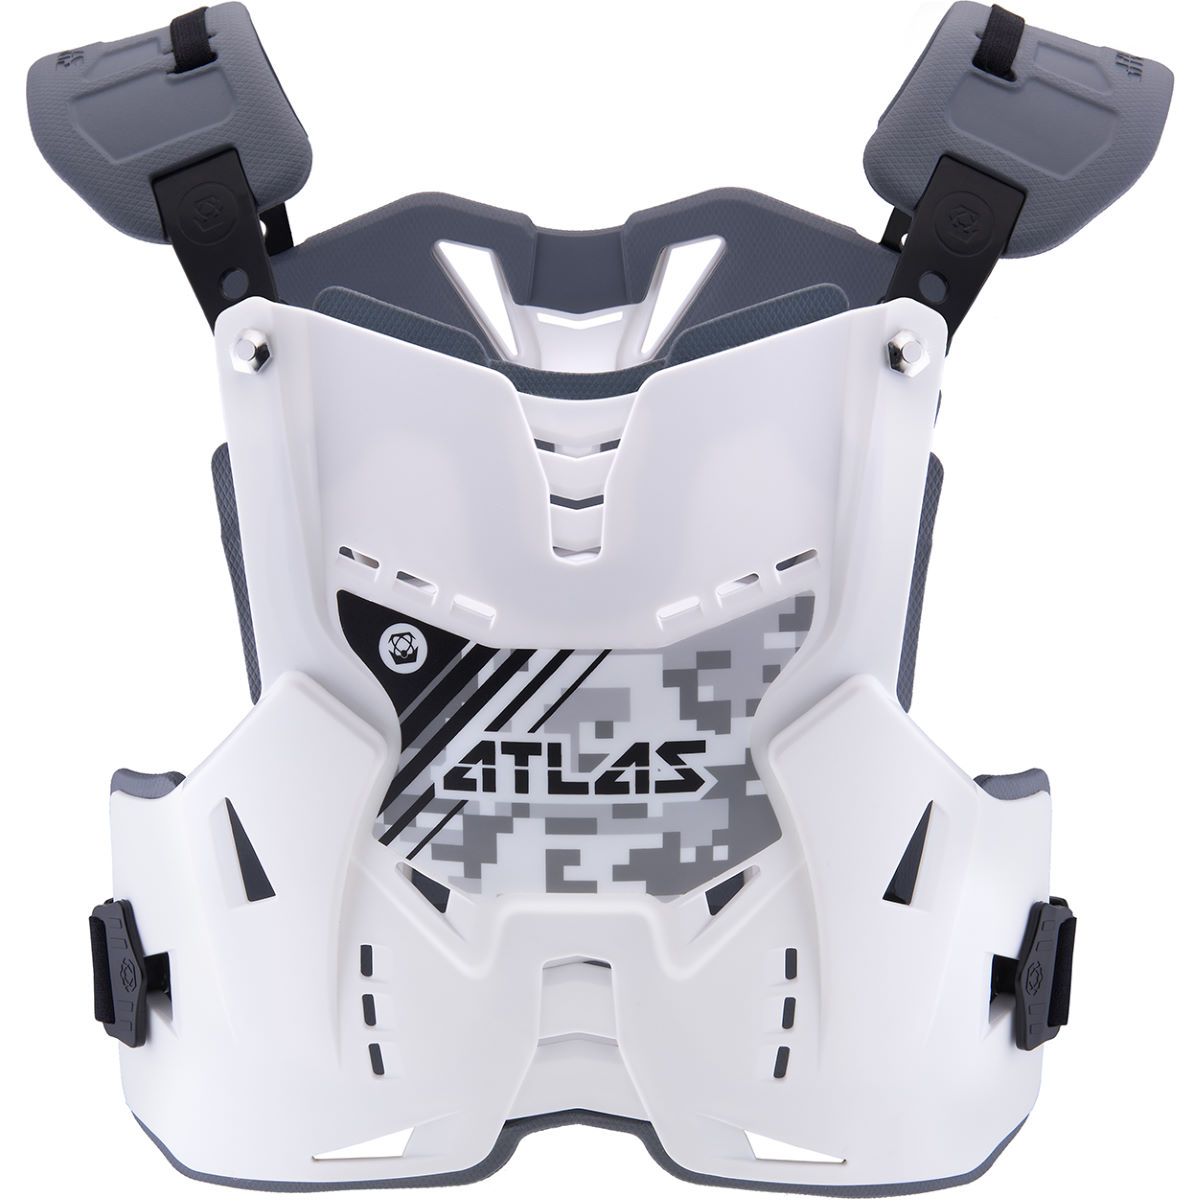 Atlas Defender Junior Body Protector - Petos y protectores corporales